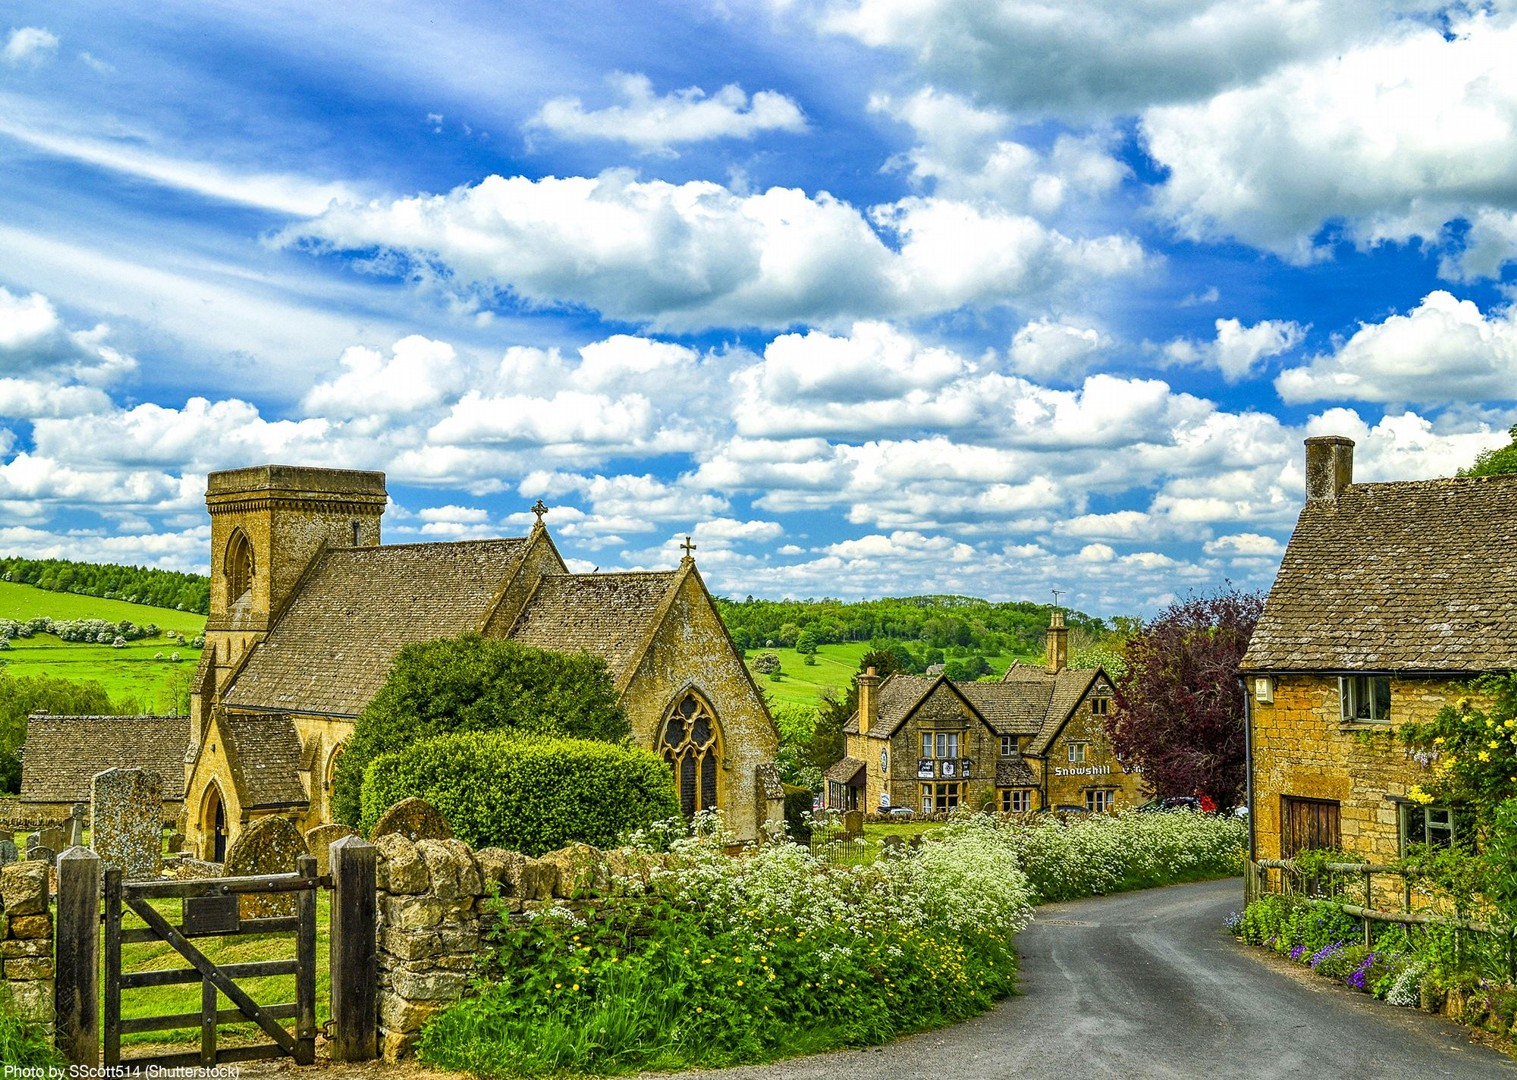 stow-on-the-wold-village-self-guided-cycling-bibury-leisure-bike-holiday.jpg - UK - Cotswolds - Bourton-on-the-Water - Self-Guided Leisure Cycling Holiday - Leisure Cycling